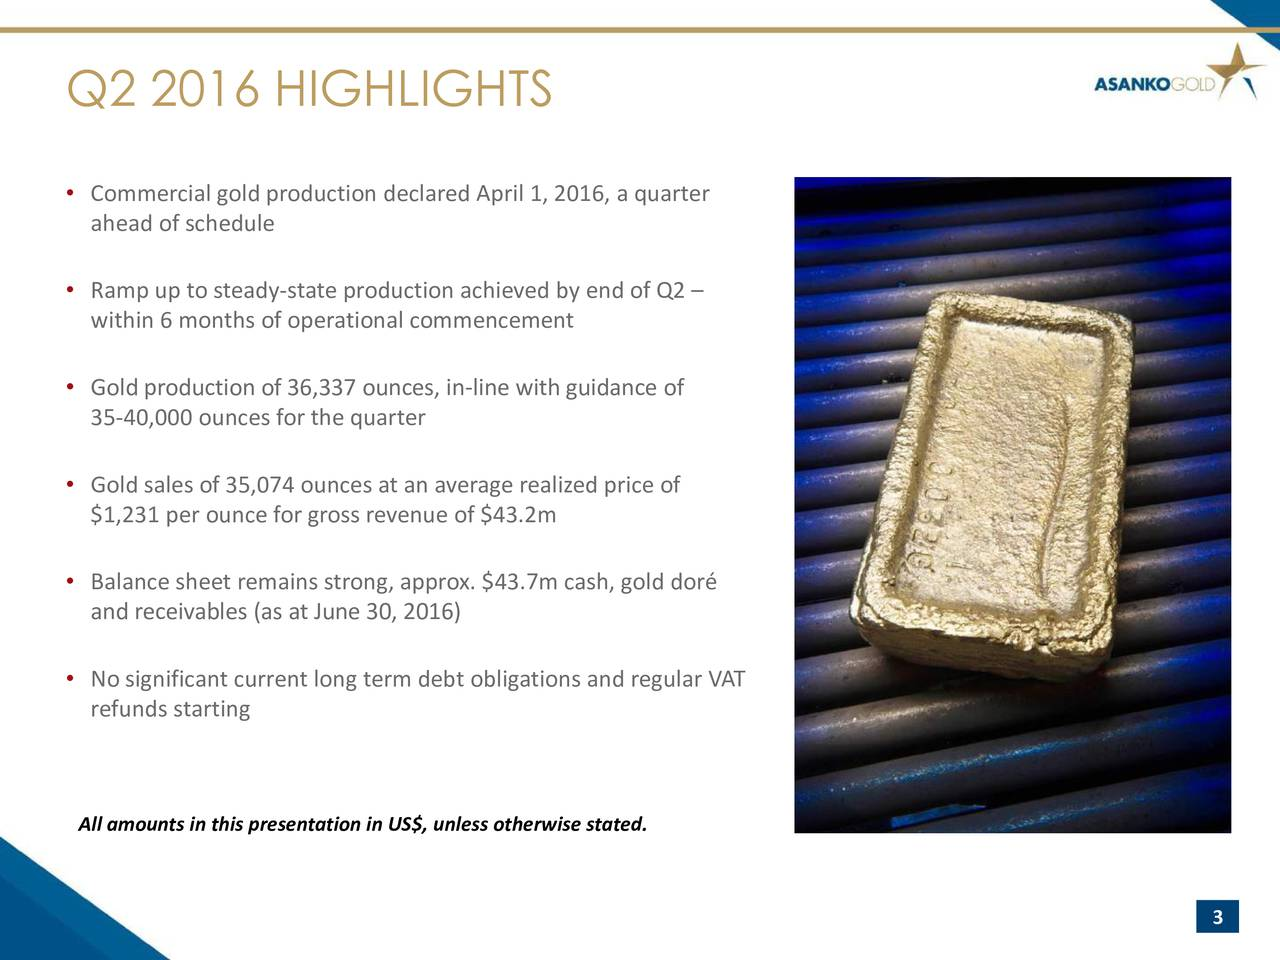 Commercial gold production declared April 1, 2016, a quarter ahead of schedule Ramp up to steady-state production achieved by end of Q2 within 6 months of operational commencement Gold production of 36,337 ounces, in-line with guidance of 35-40,000 ounces for the quarter Gold sales of 35,074 ounces at an average realized price of $1,231 per ounce for gross revenue of $43.2m Balance sheet remains strong, approx. $43.7m cash, gold dor and receivables (as at June 30, 2016) No significant current long term debt obligations and regular VAT refunds starting All amounts in this presentation in US$, unless otherwise stated. 3